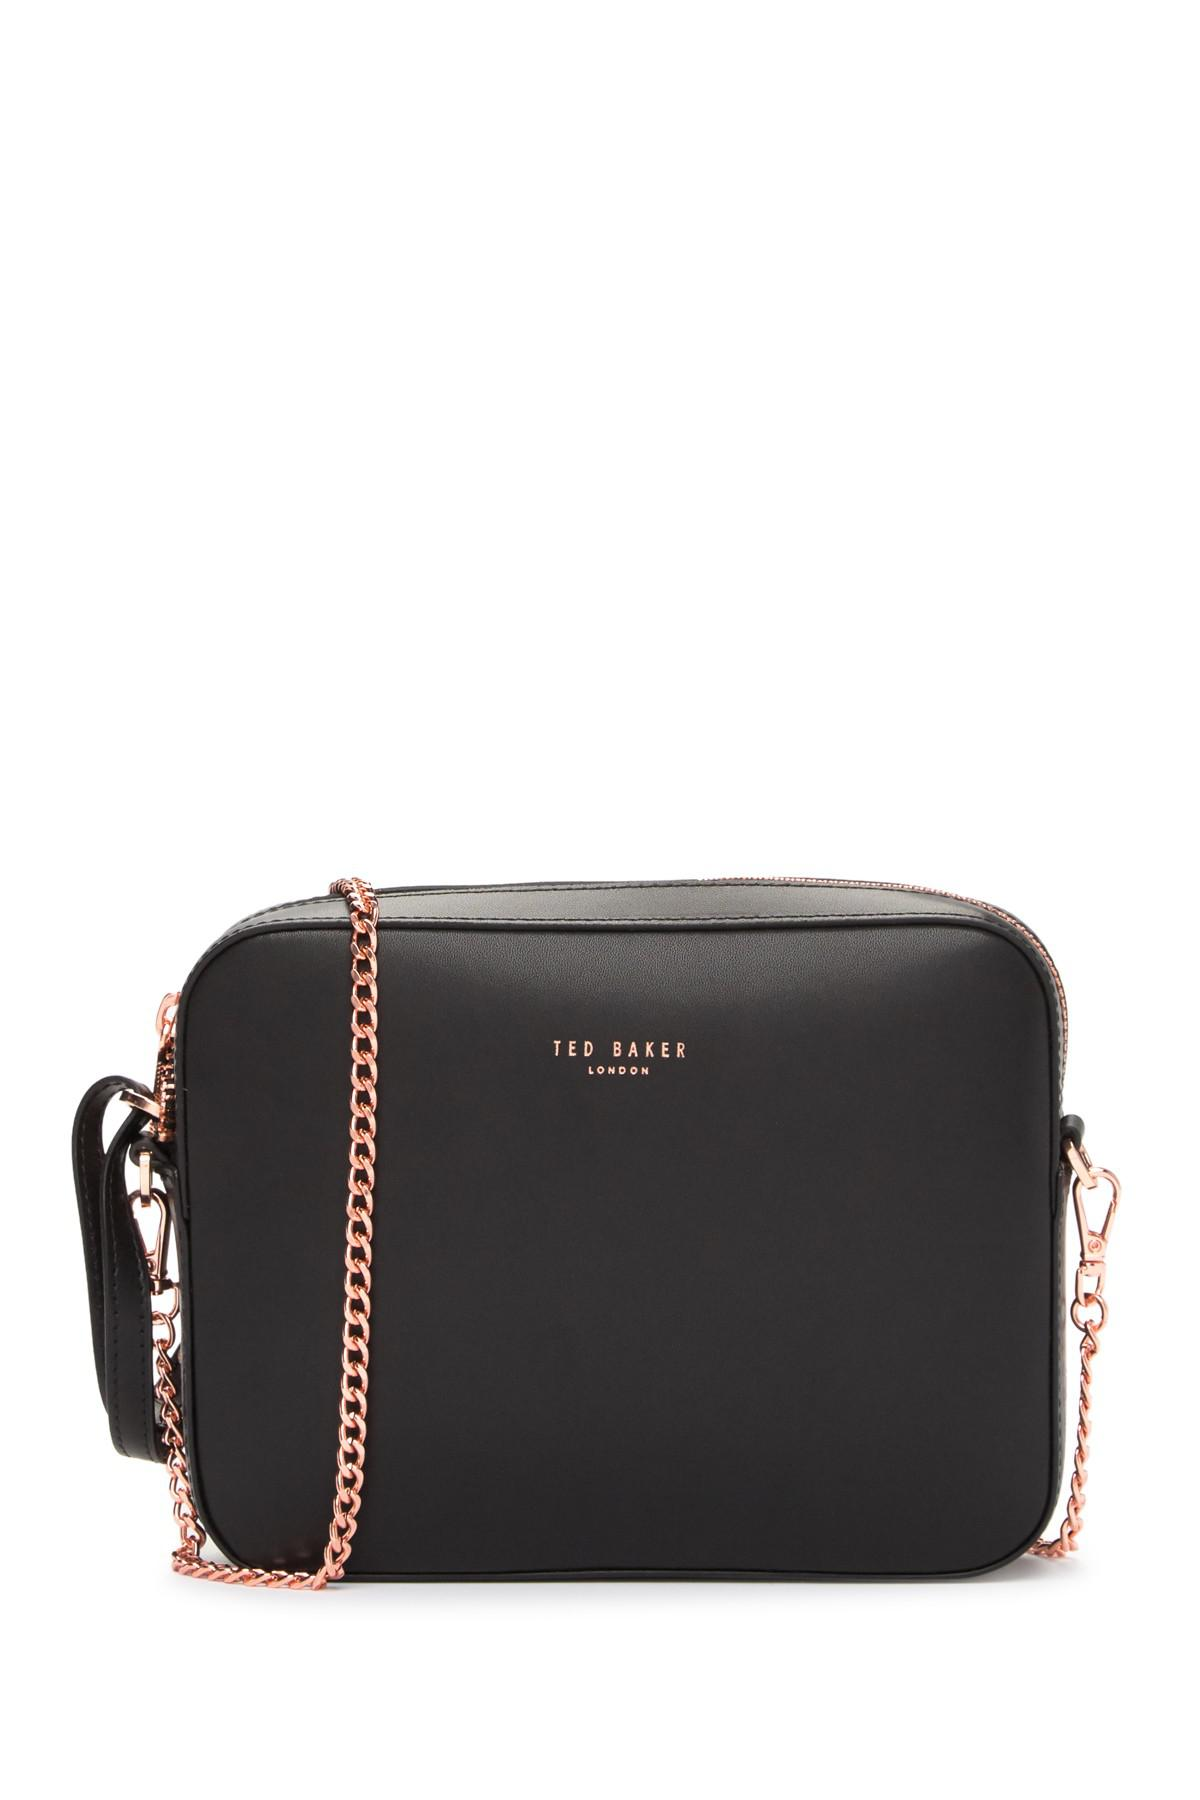 476fdd370 Ted Baker Laneyy Chain Strap Camera Bag in Black - Lyst